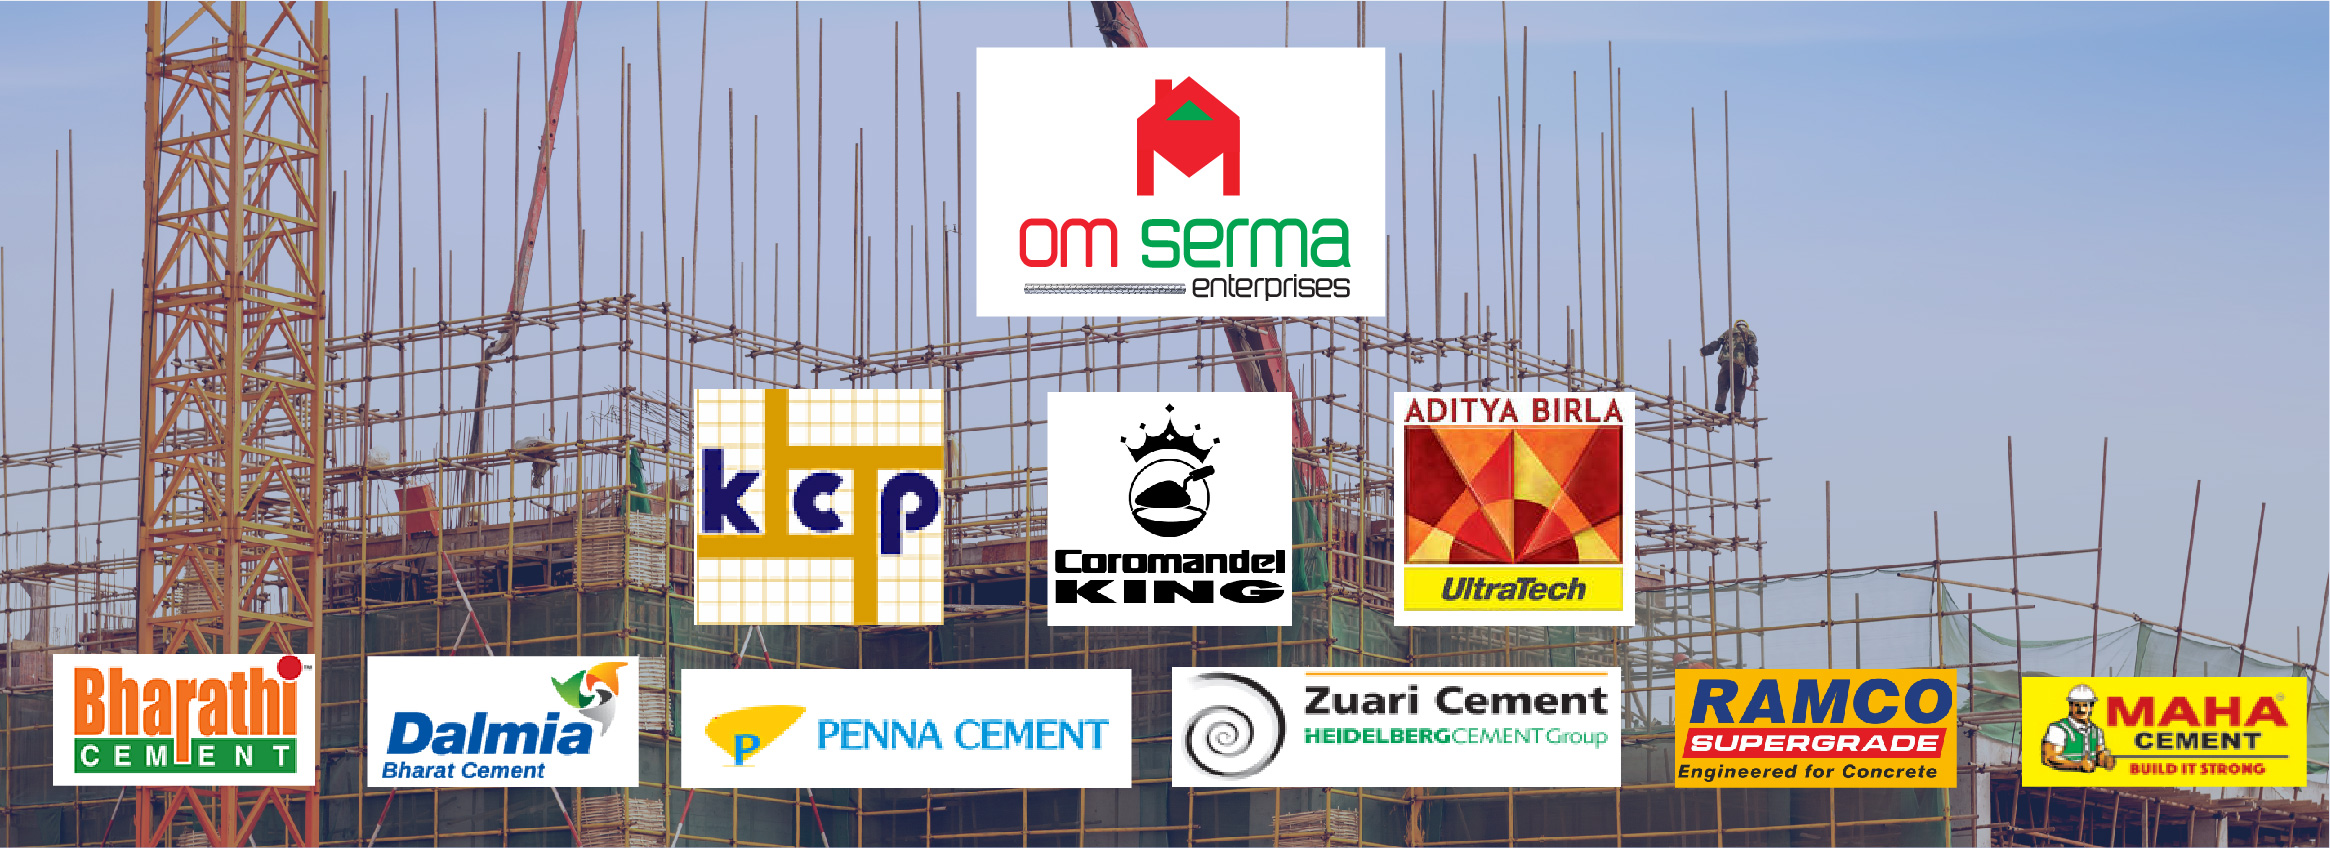 Om serma Banner Template (Cement)